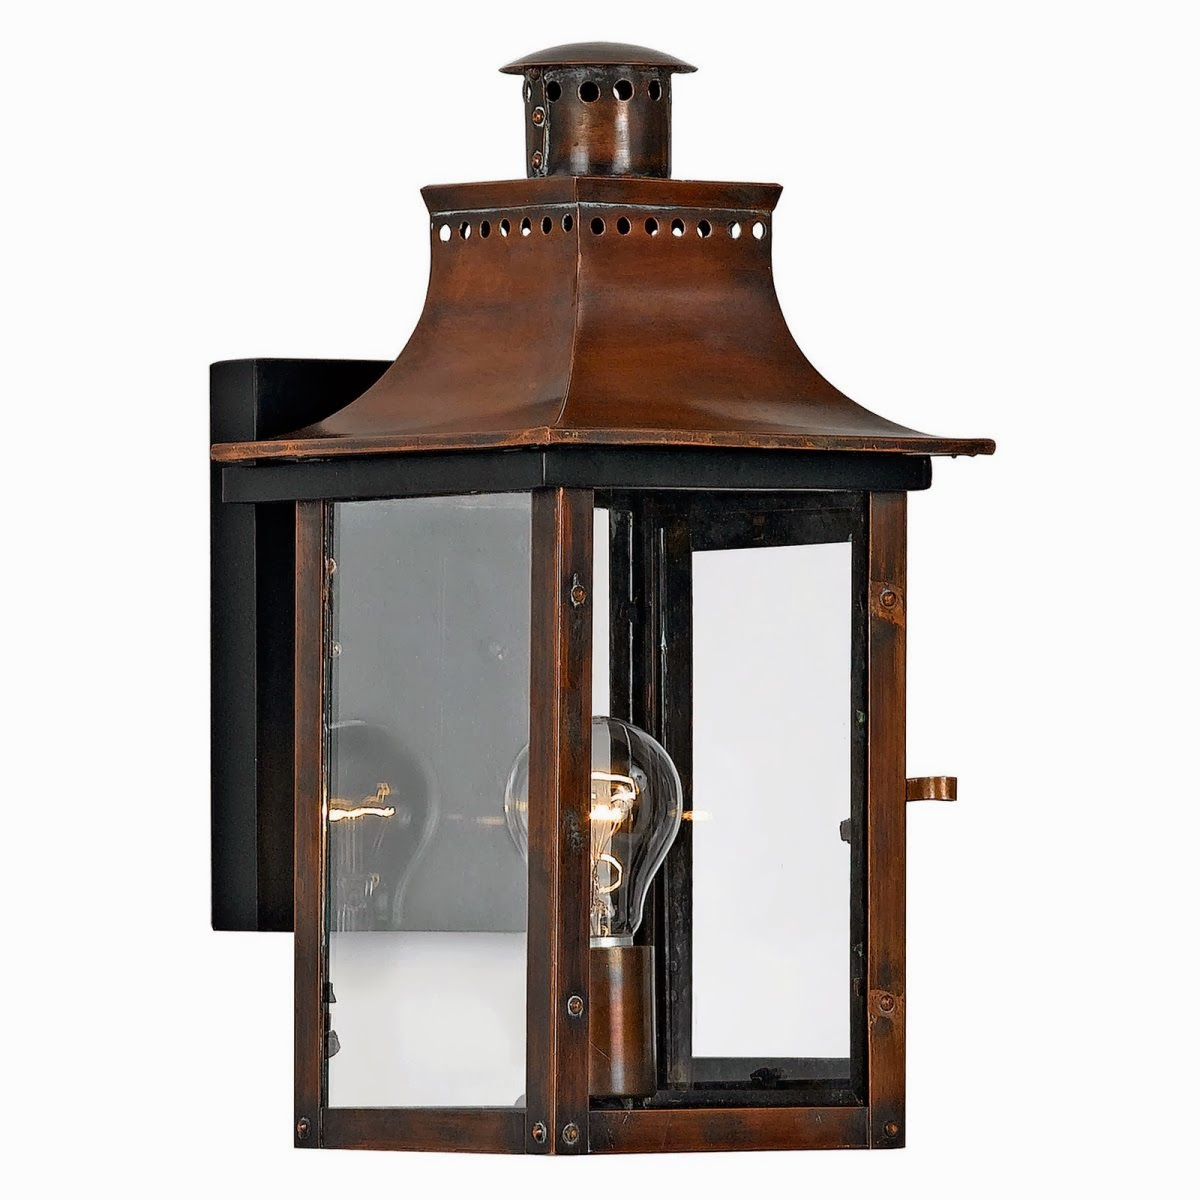 Upscale Lighting Fixtures: Quoizel Chalmers CM8408AC Outdoor Wall Lantern